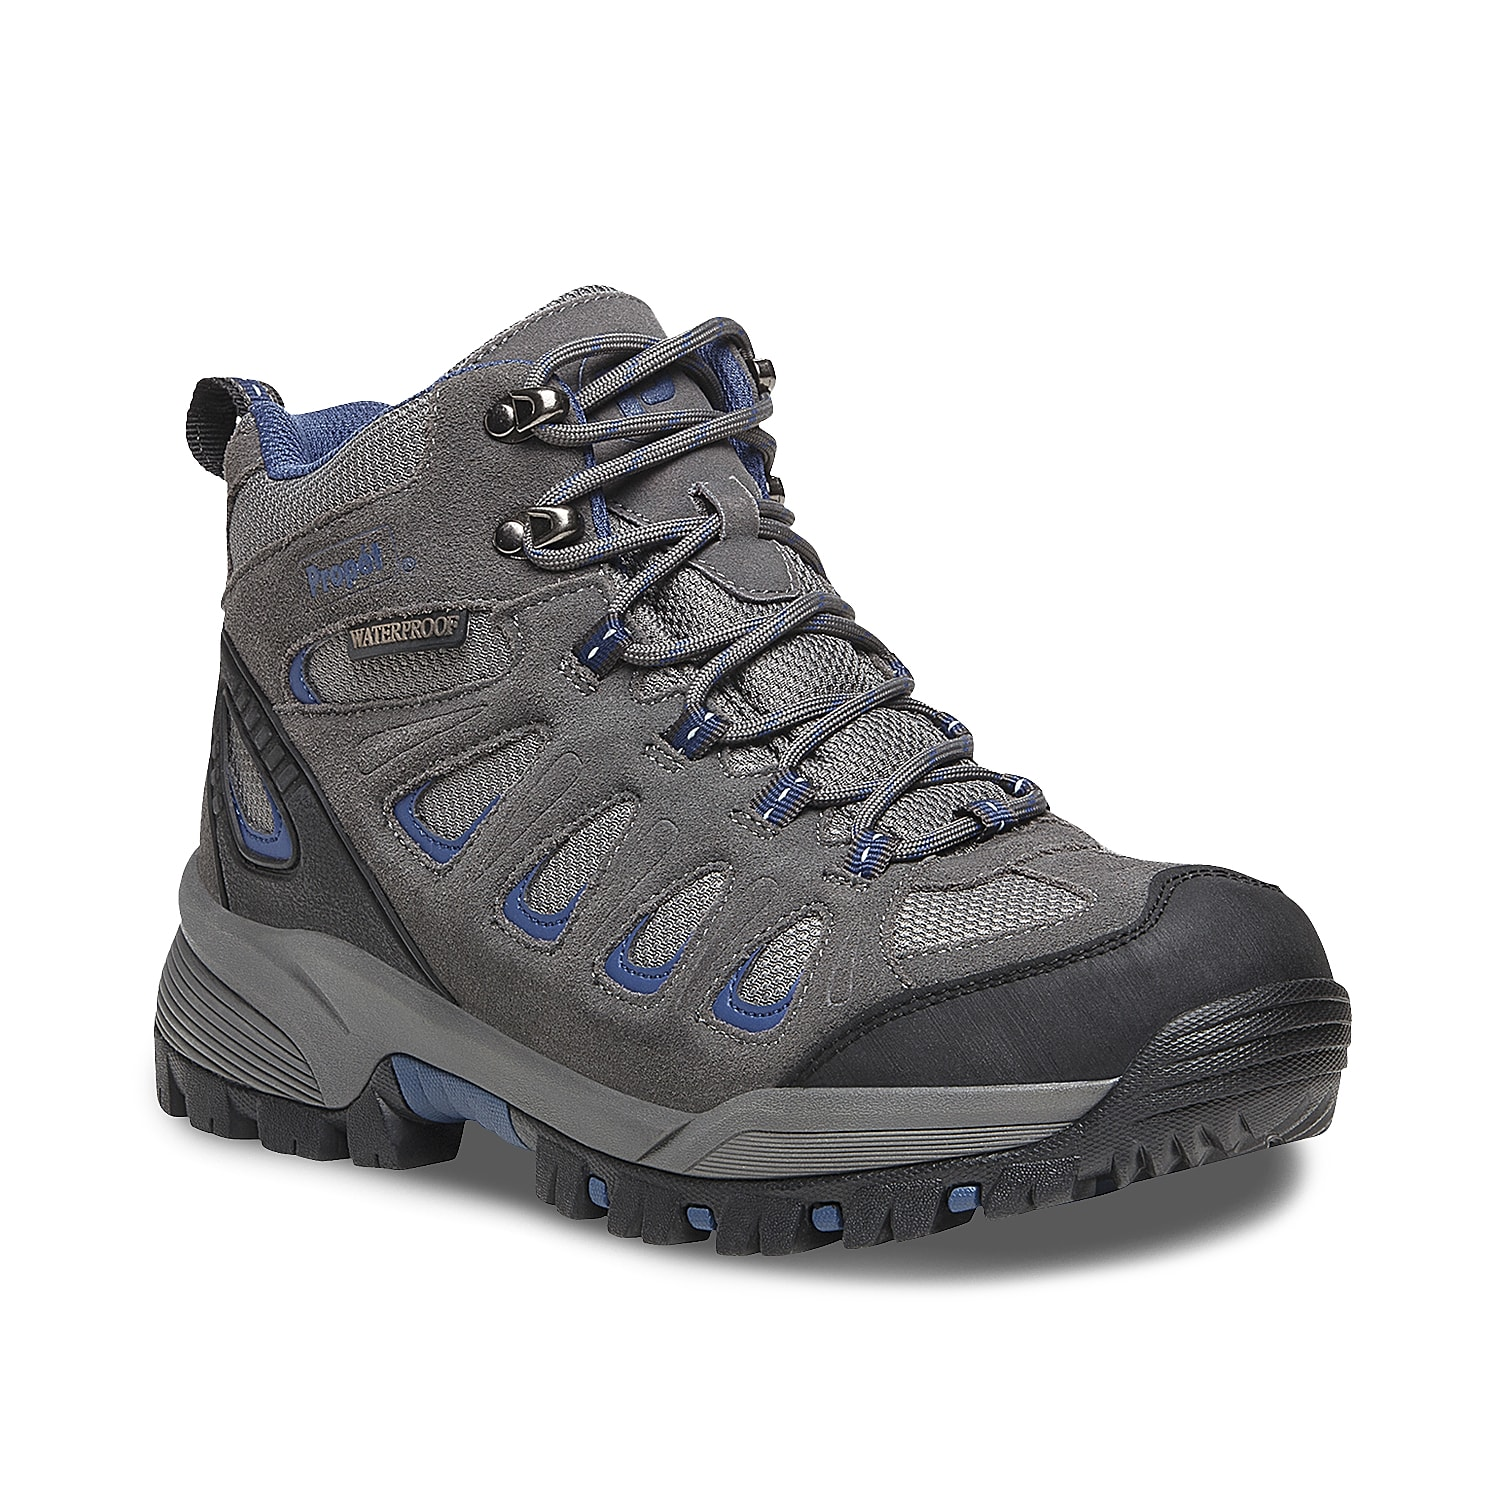 Take your adventure to the next level with the Pro Ridge Walker hiking boot from Propet. This pair features padded collar for support and a thick EVA midsole to cushion every step.